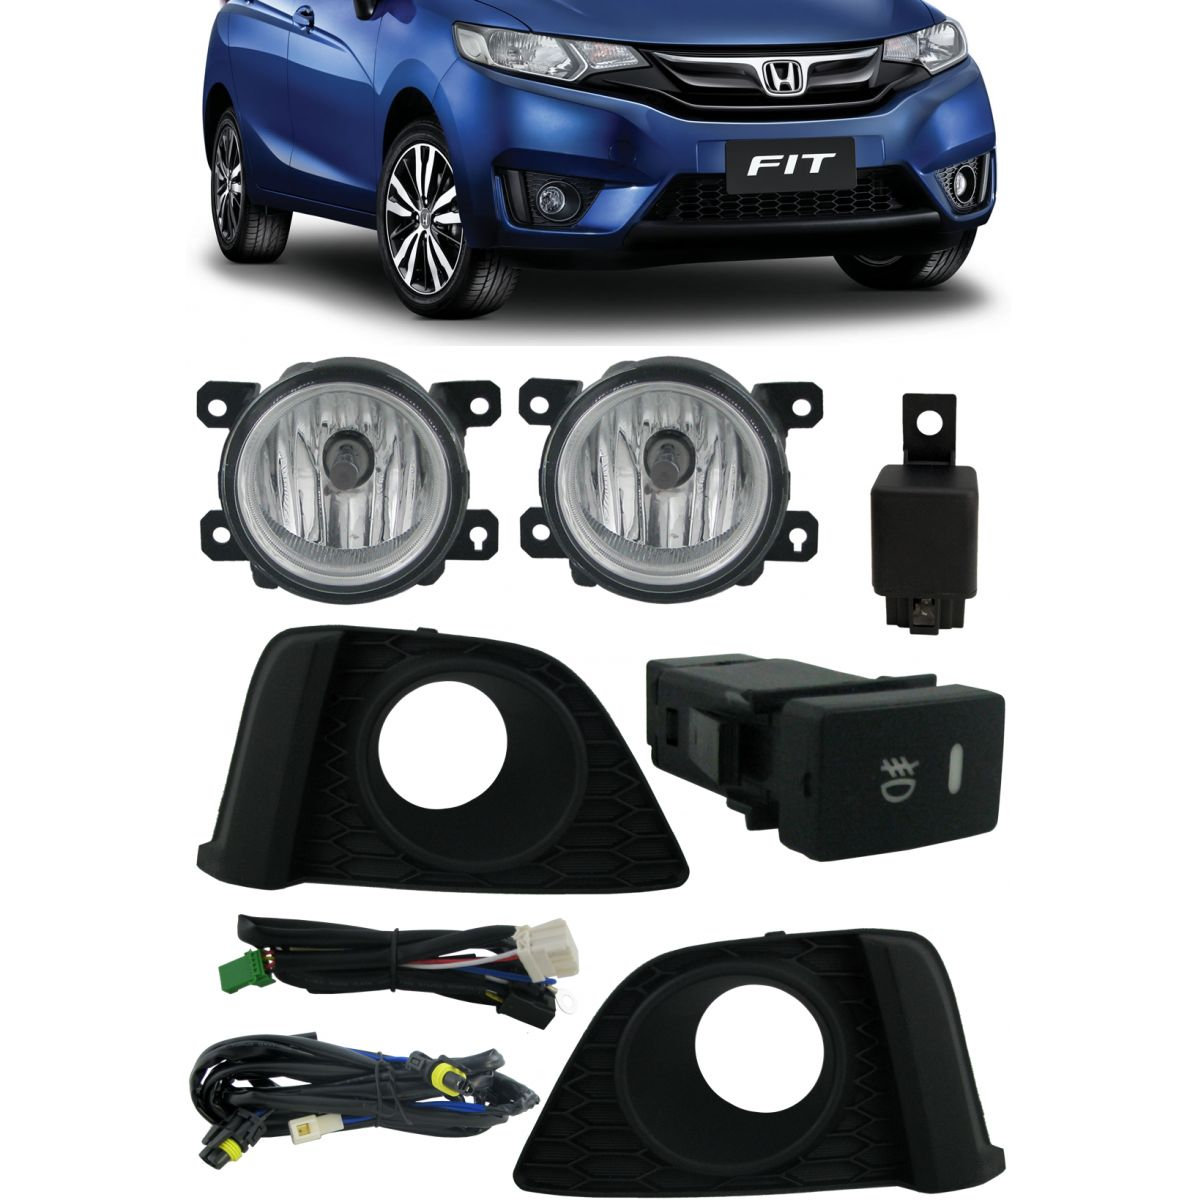 Kit Farol de Milha Neblina Honda New Fit 2014 á 2017 - Interruptor Modelo Original